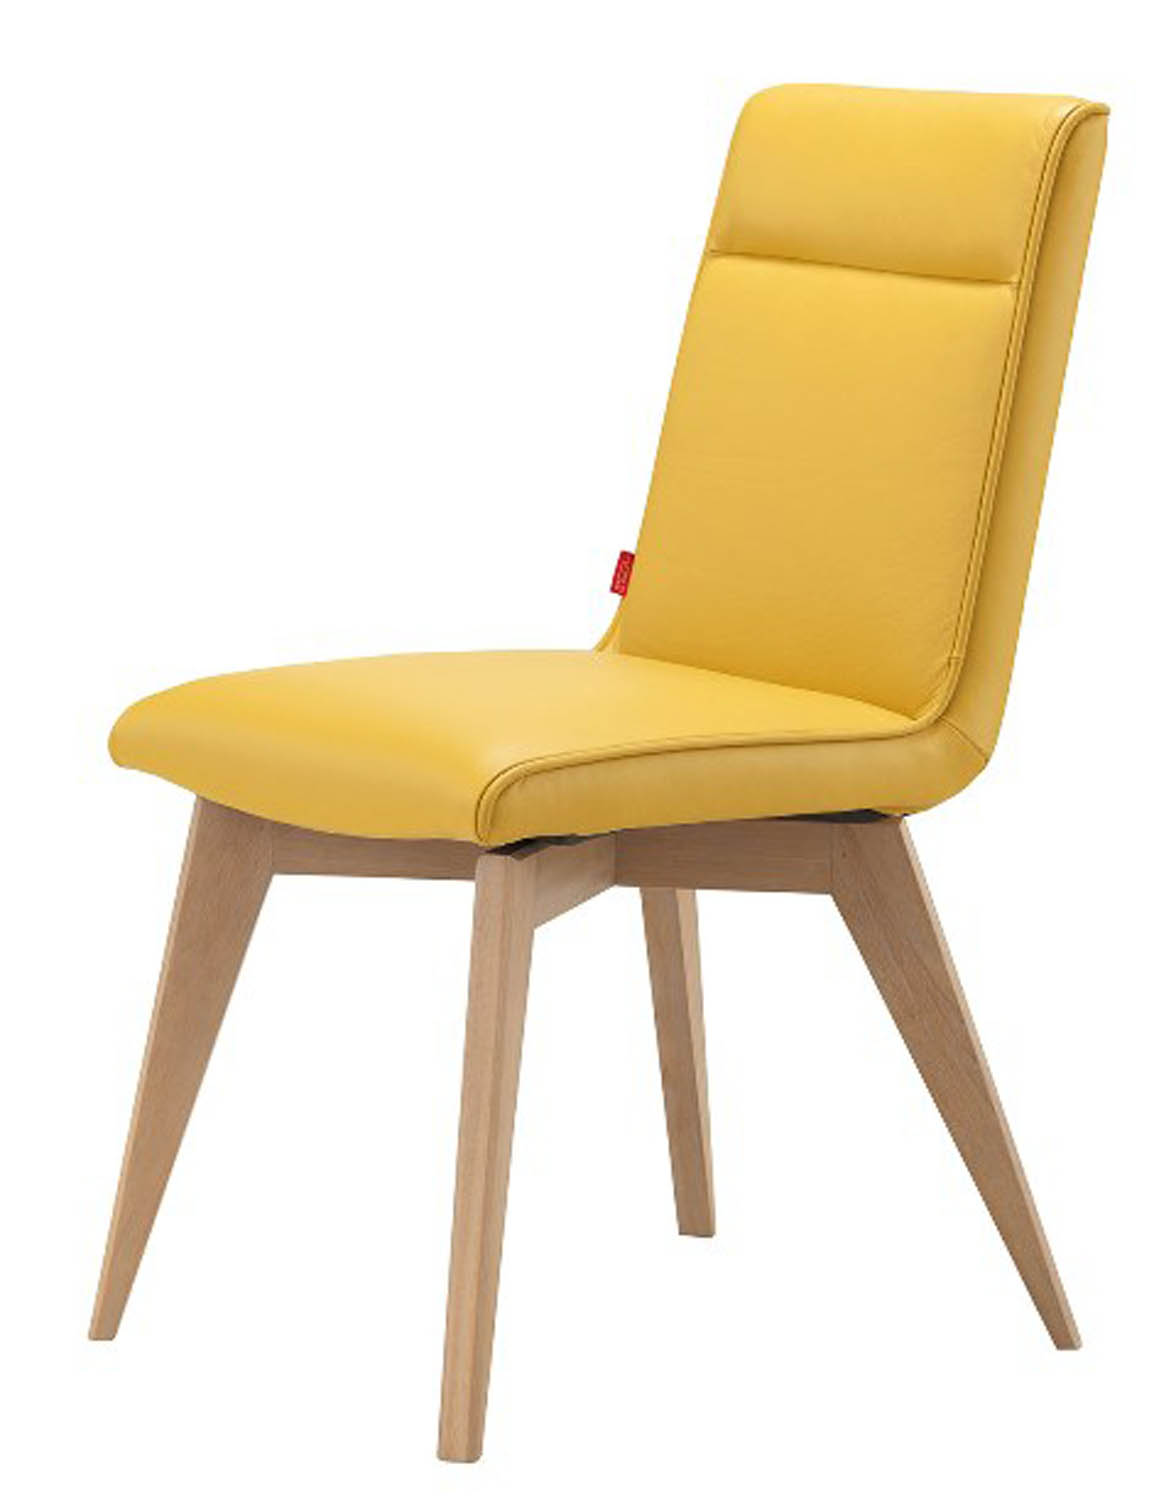 Jasper chair new furniture by design for New chair design